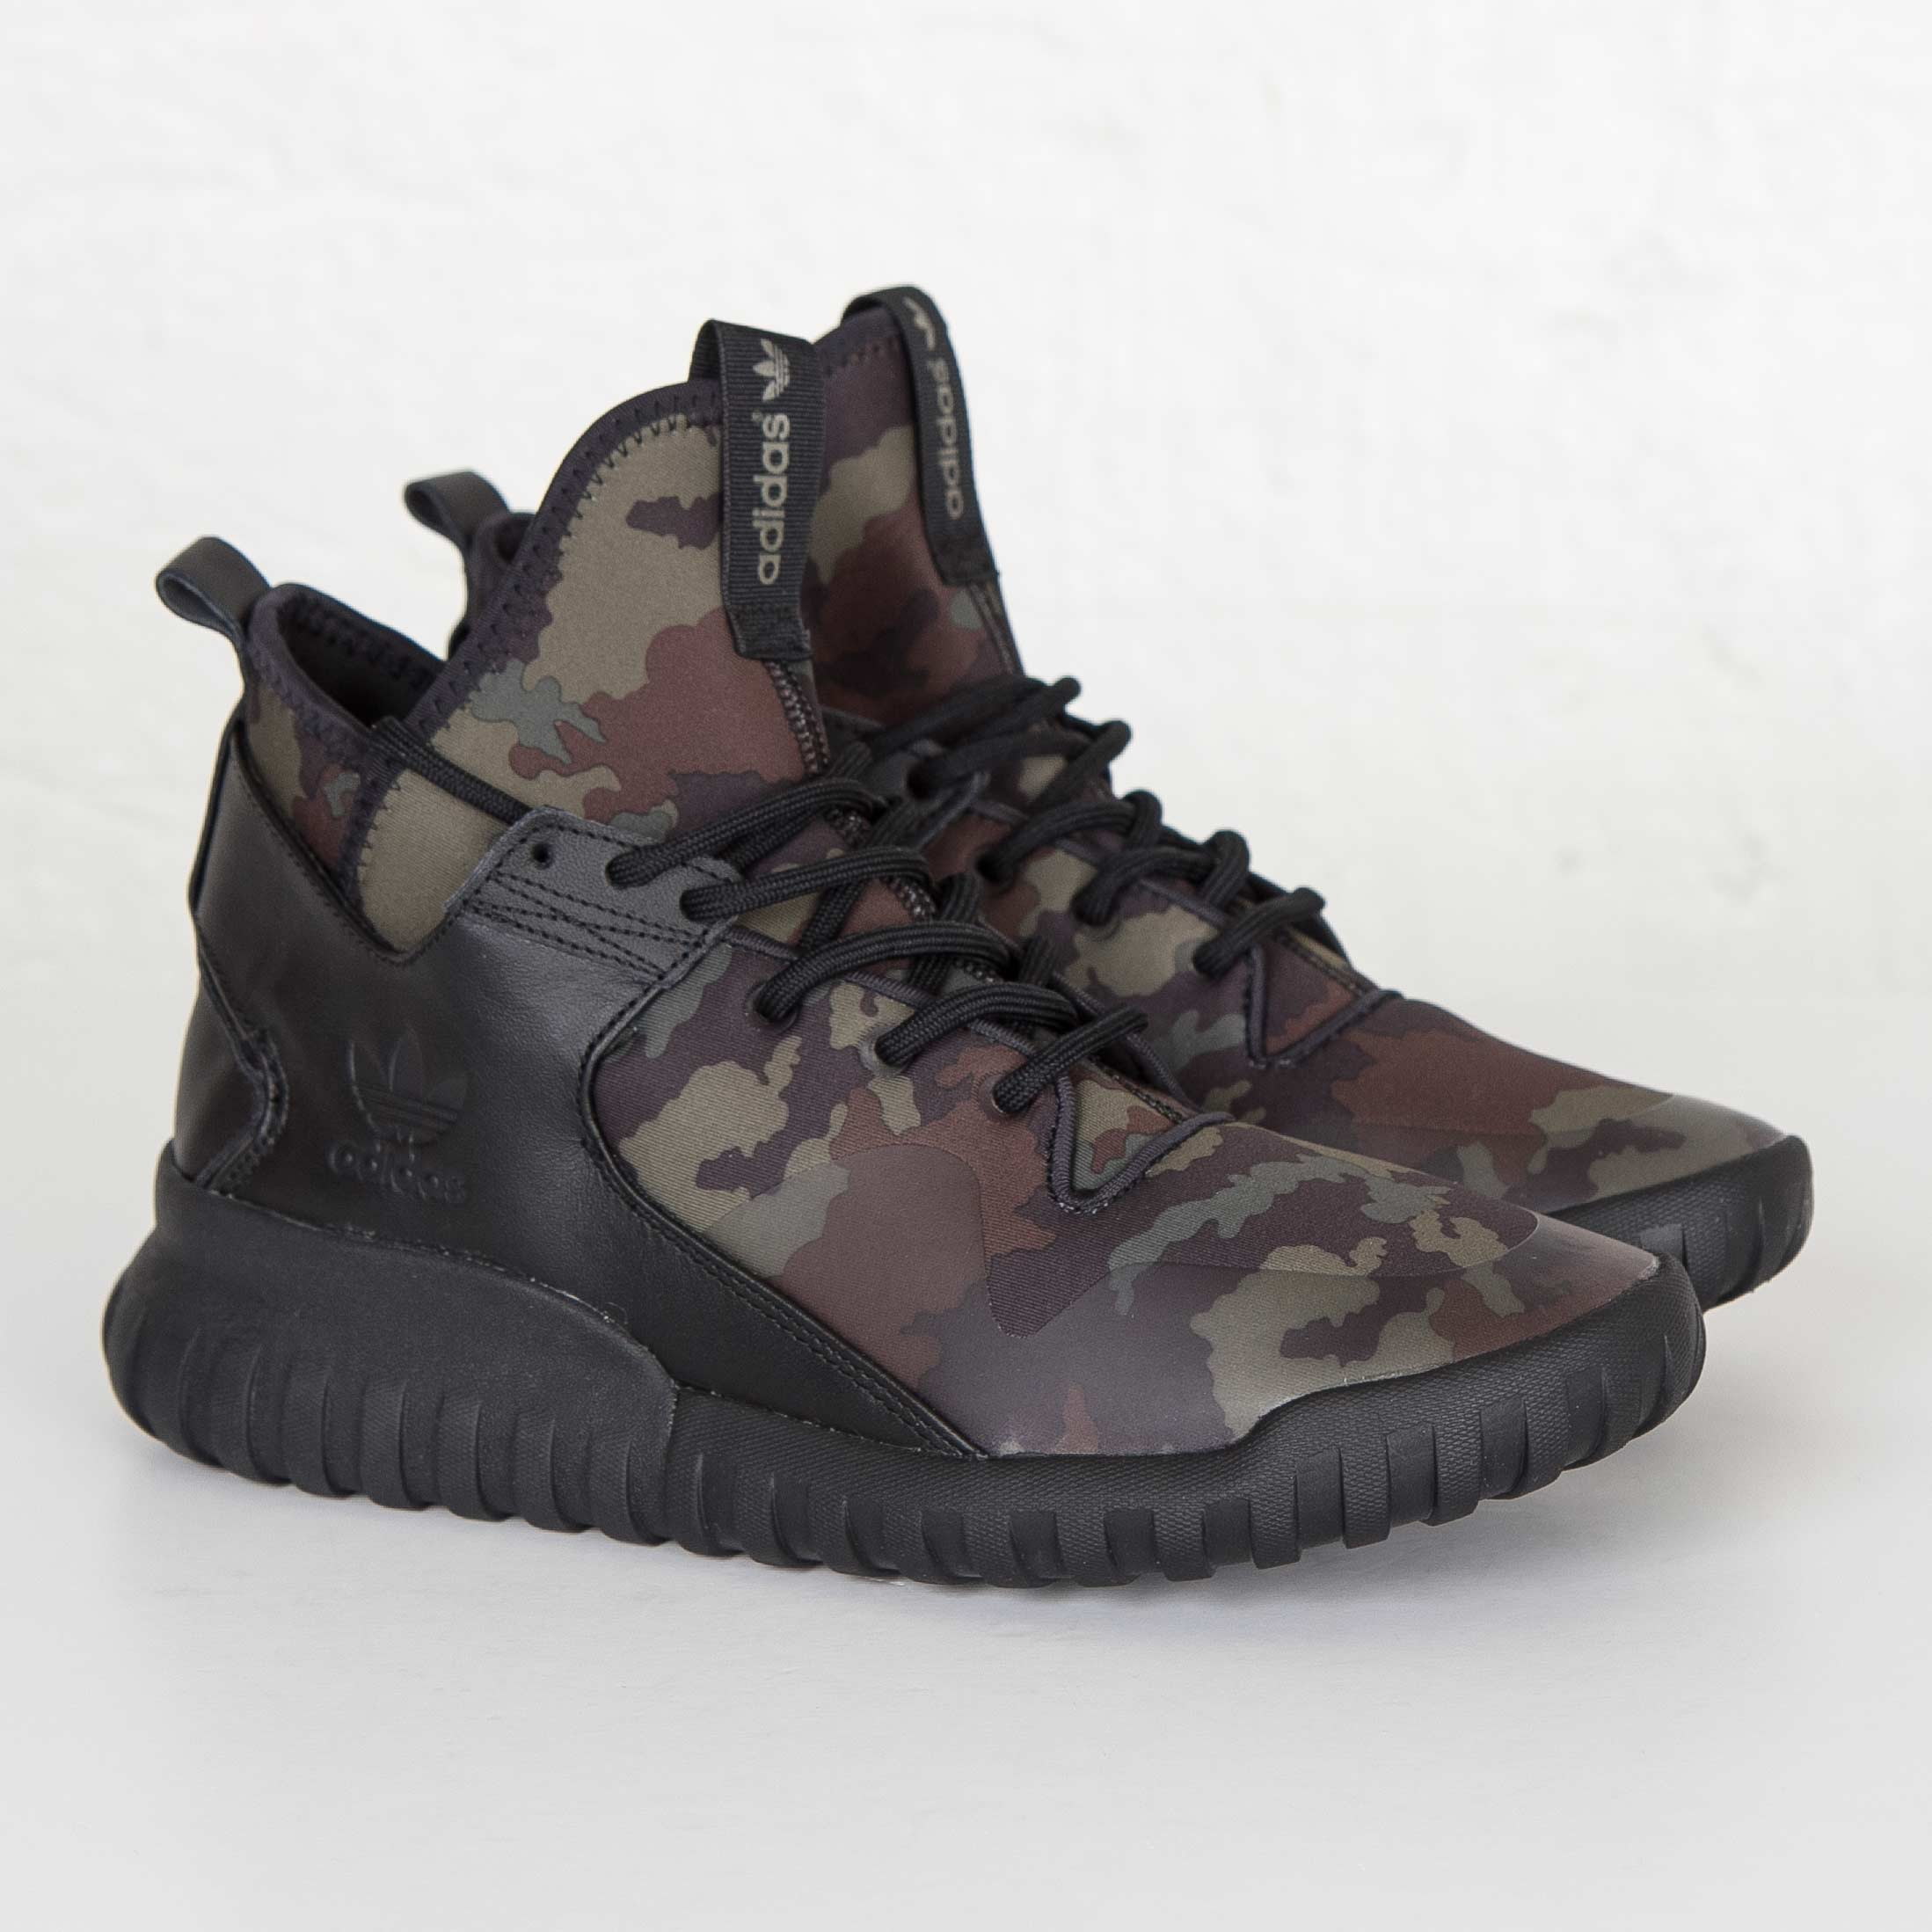 new style f1c81 50a45 adidas Tubular X - B25700 - Sneakersnstuff | sneakers ...